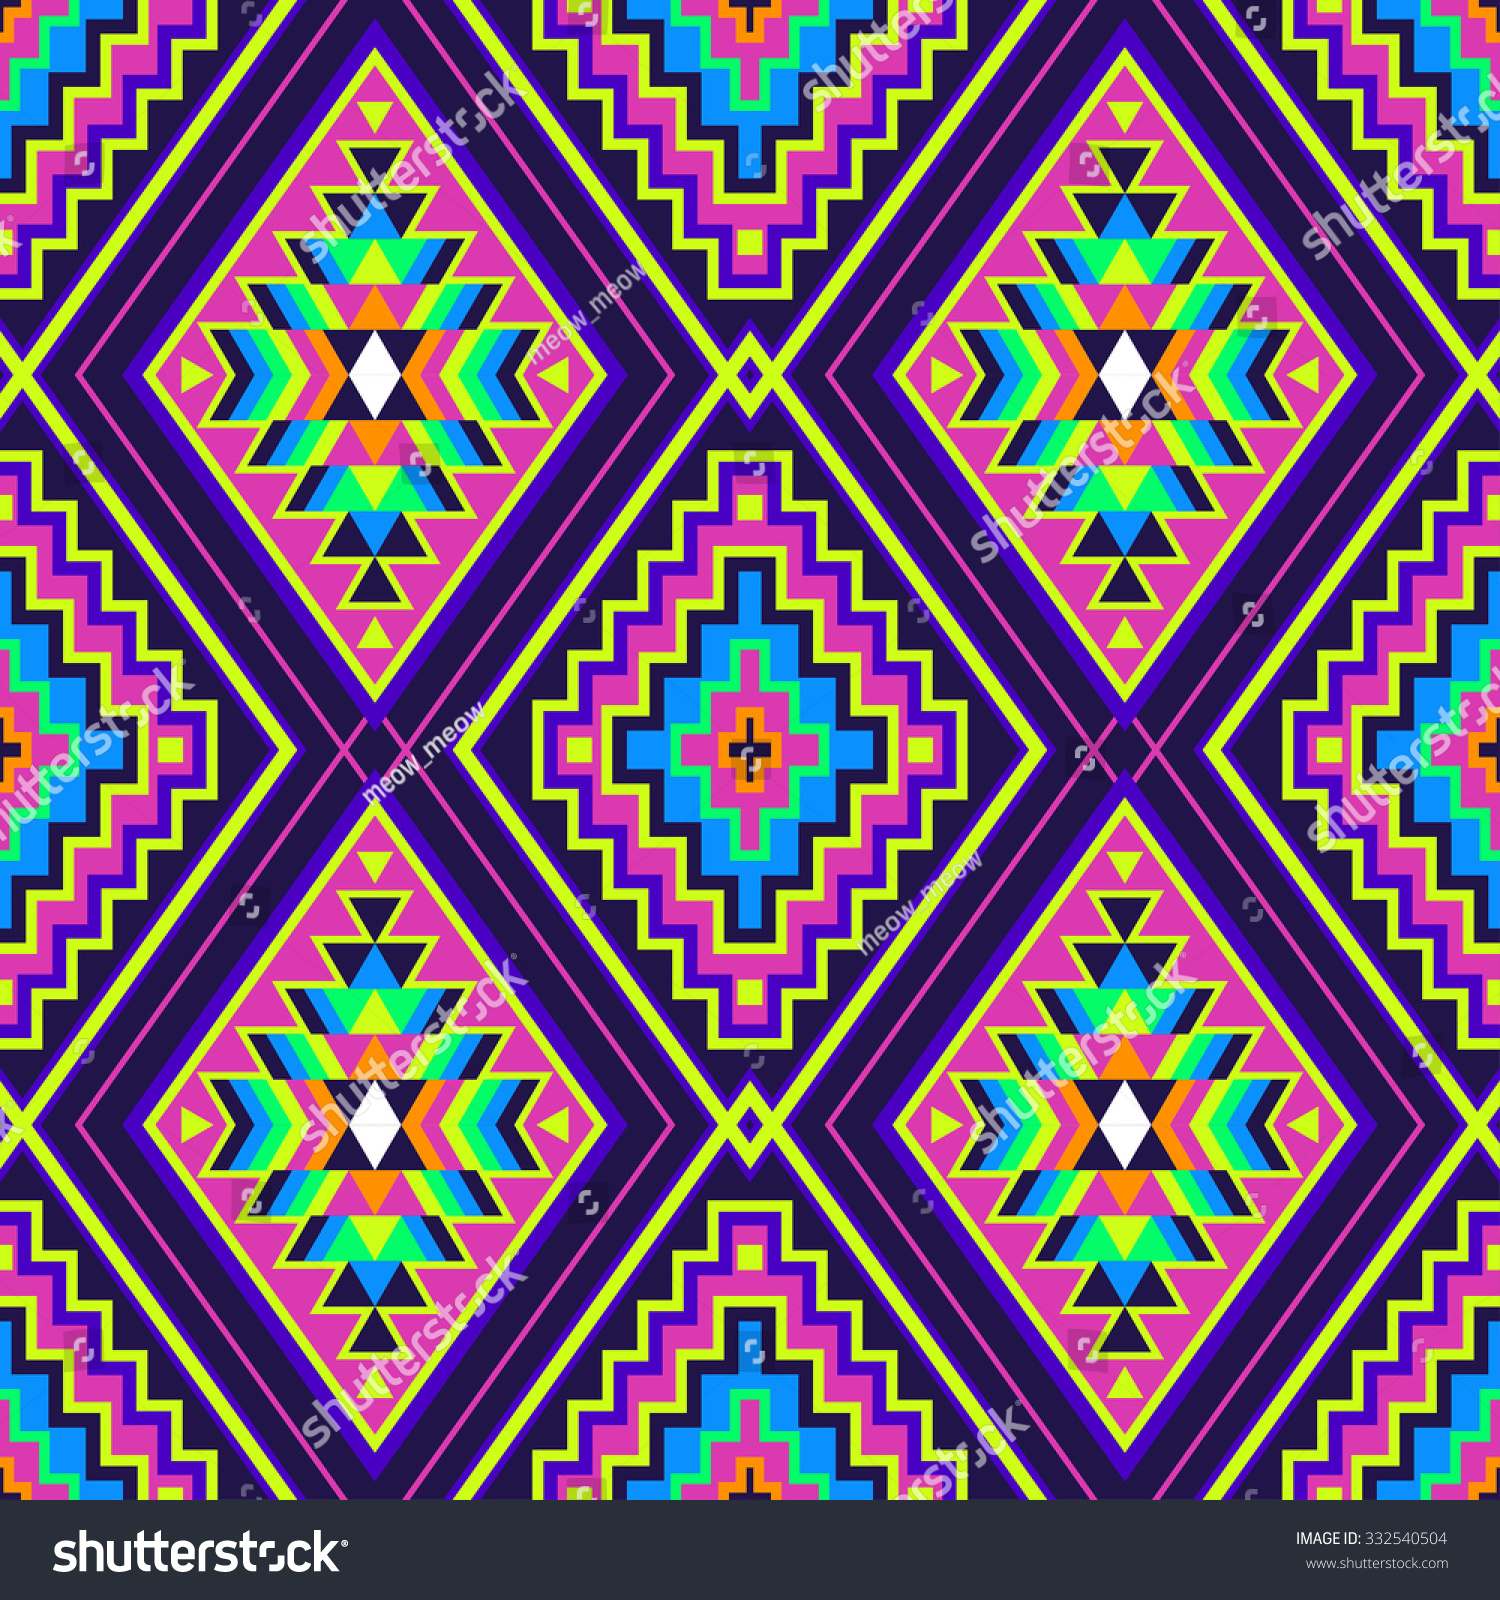 Neon Color Tribal Indian Seamless Pattern Abstract Geometric Print Ethnic Hipster Backdrop It